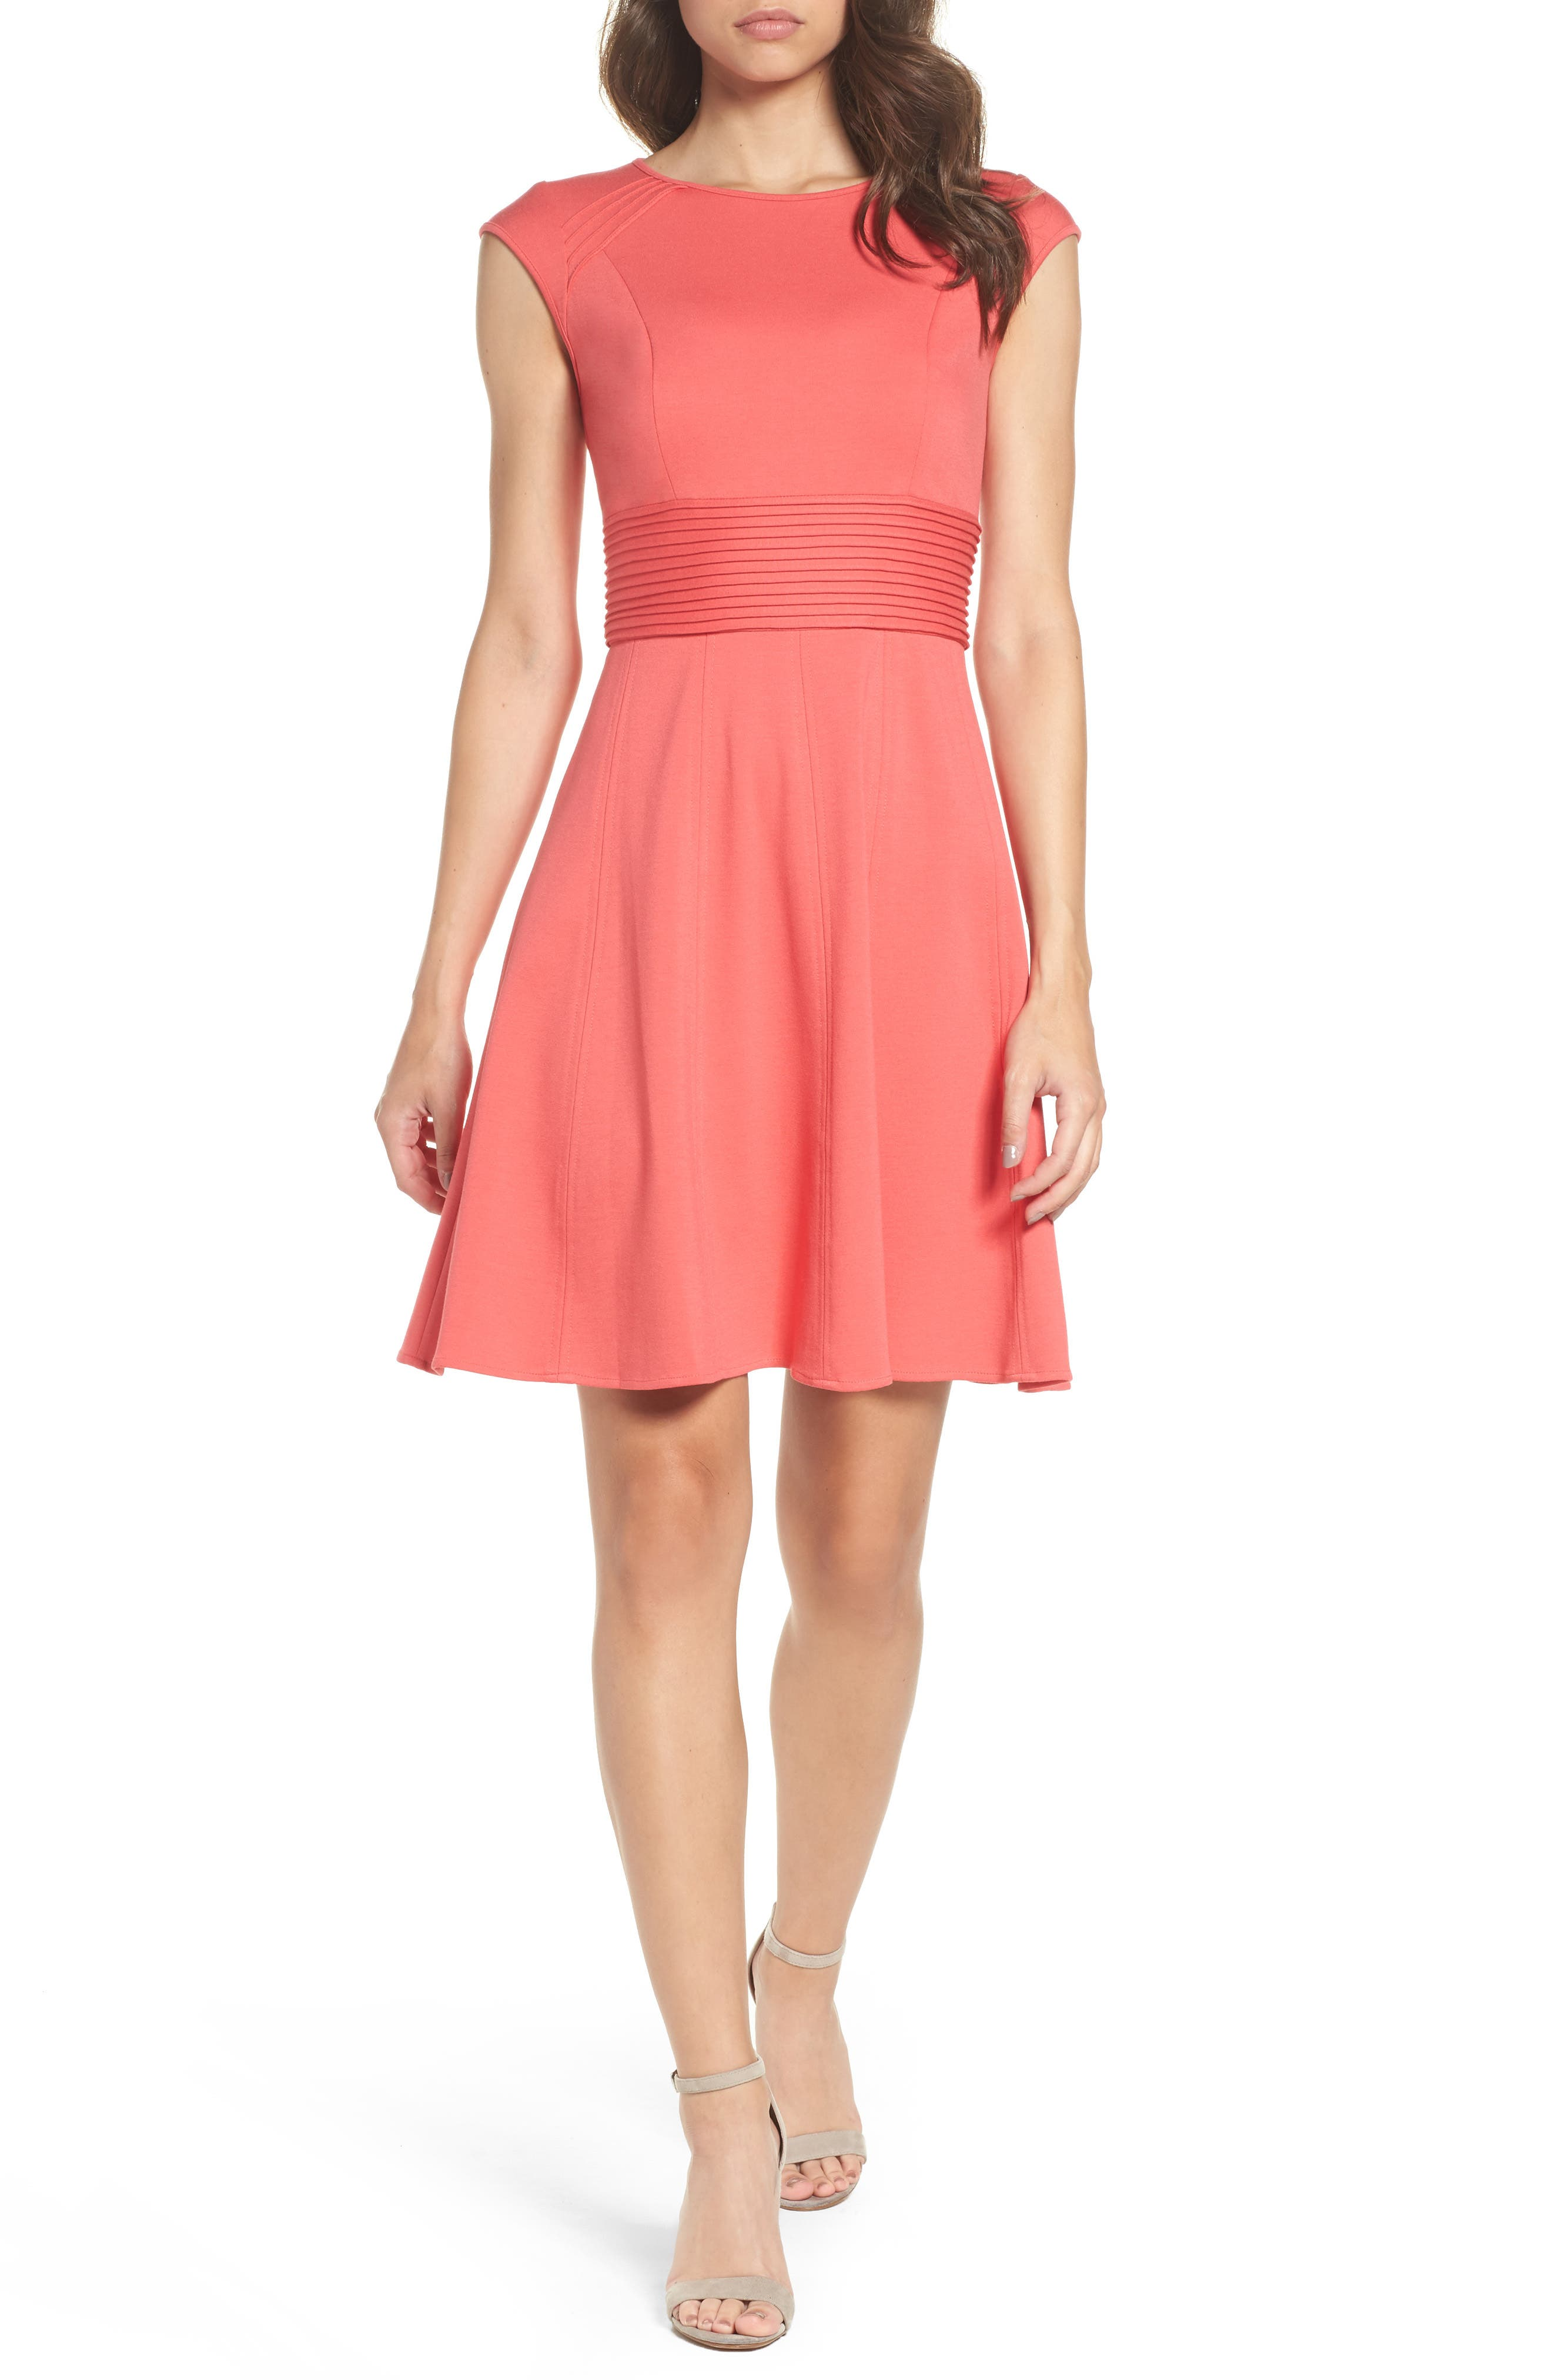 Main Image - Eliza J Pintucked Waist Seamed Ponte Knit Fit & Flare Dress